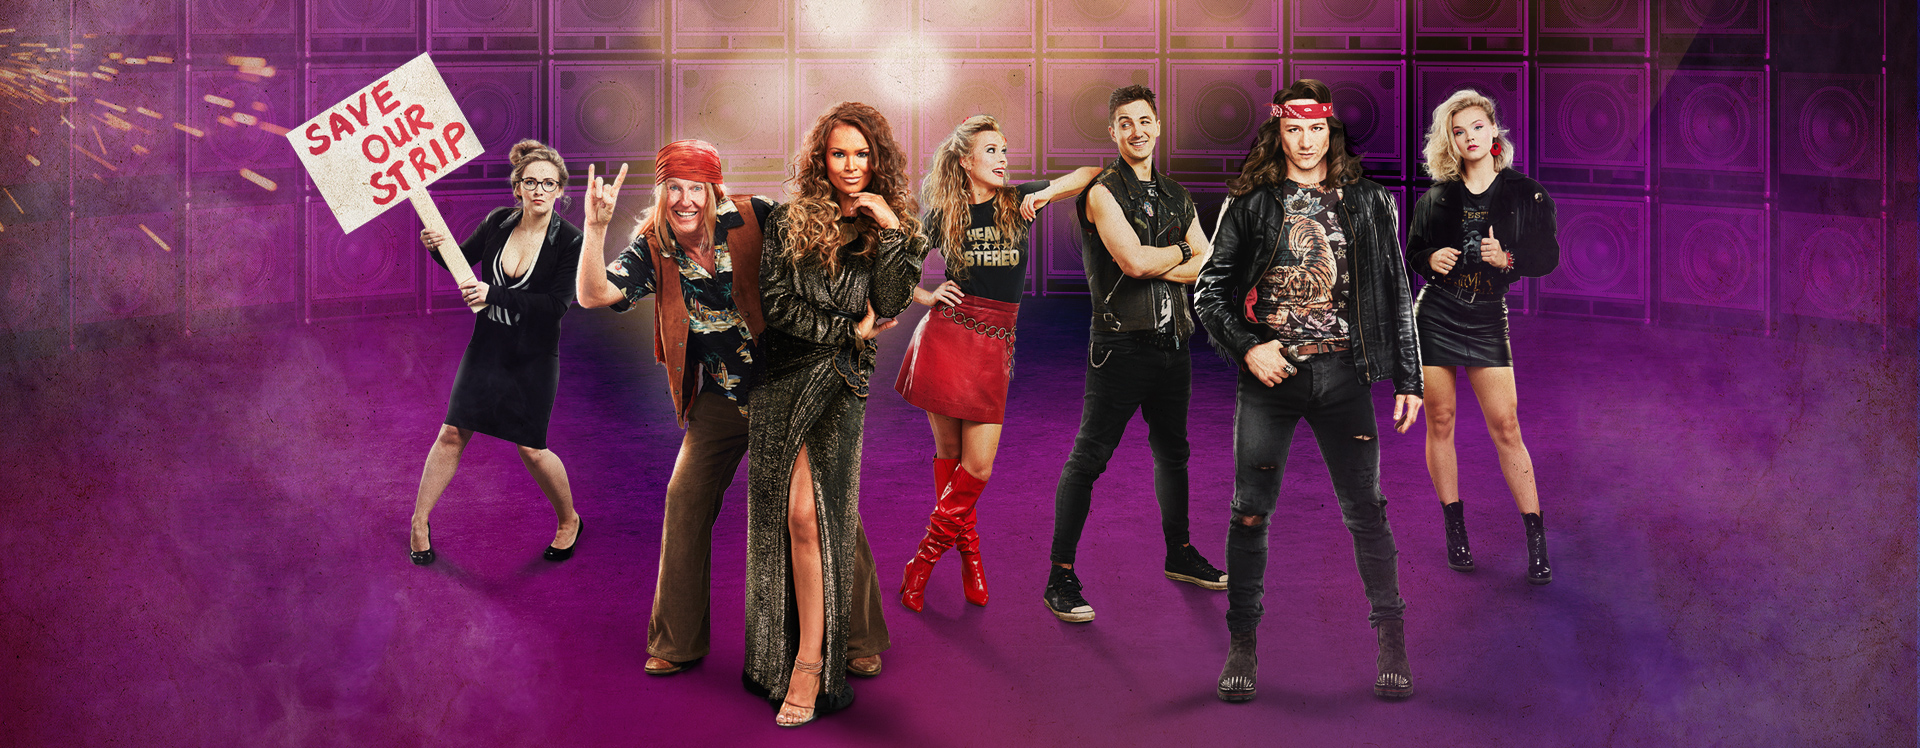 rock of ages uk tour.jpg